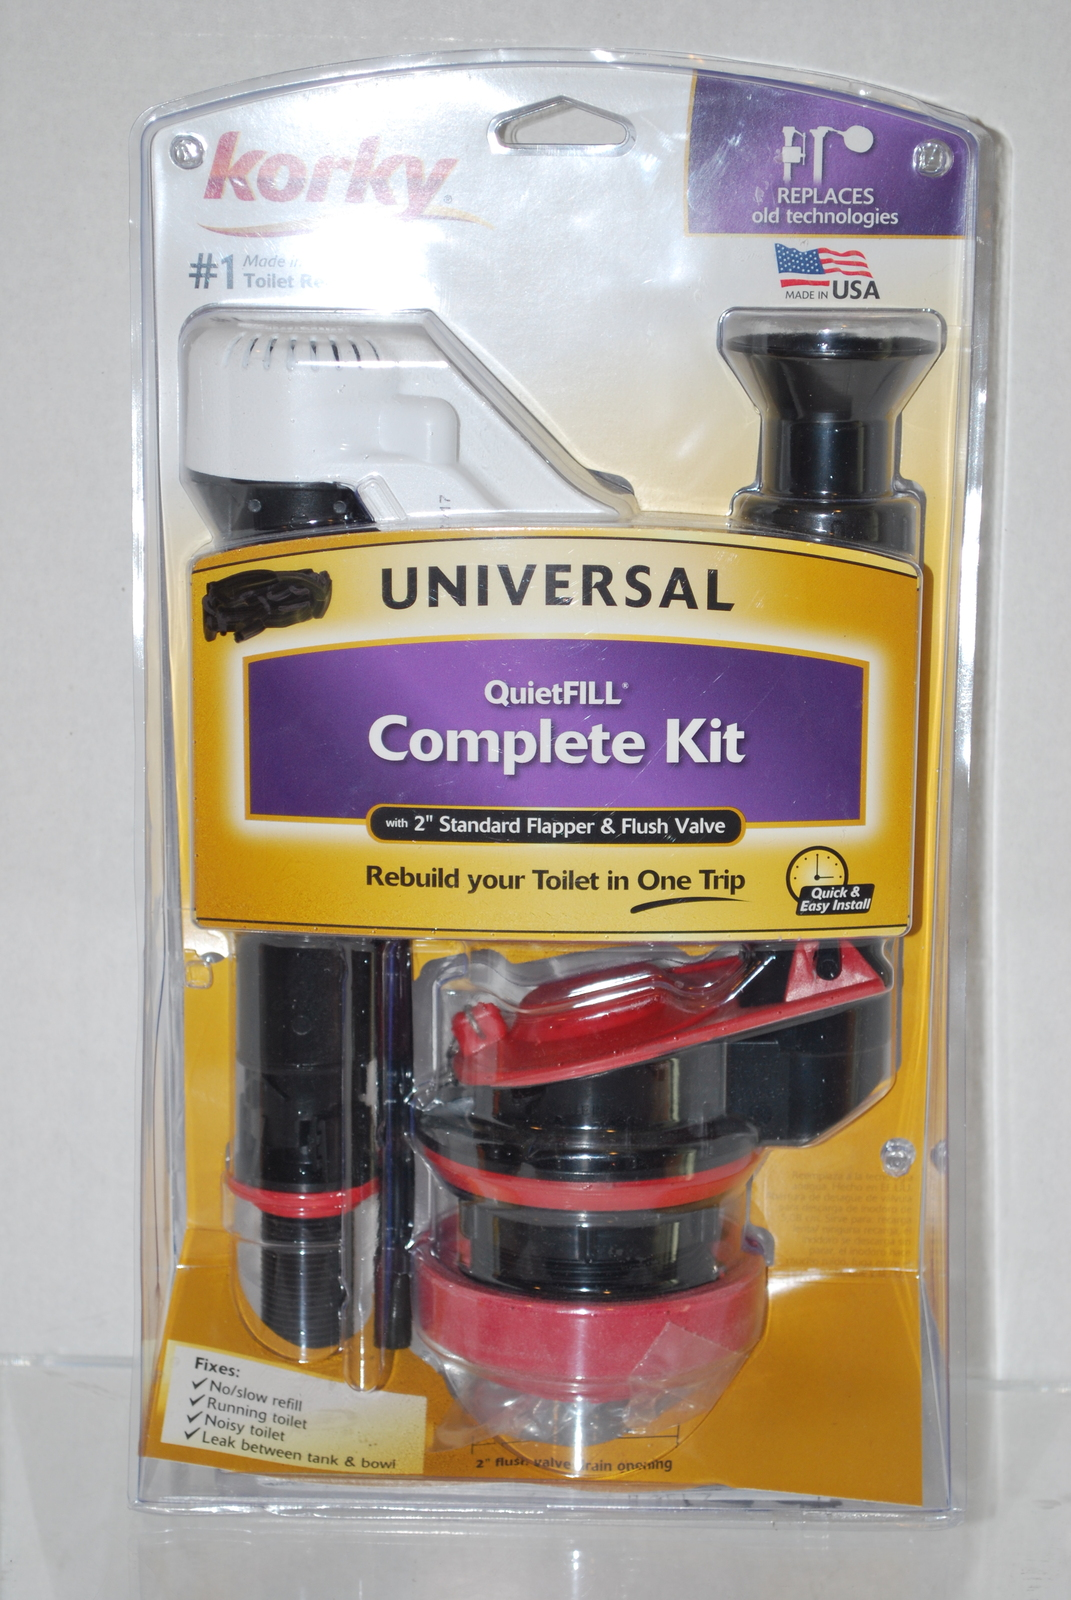 Korky Universal Quietfill Complete Toilet Repair Kit #4010